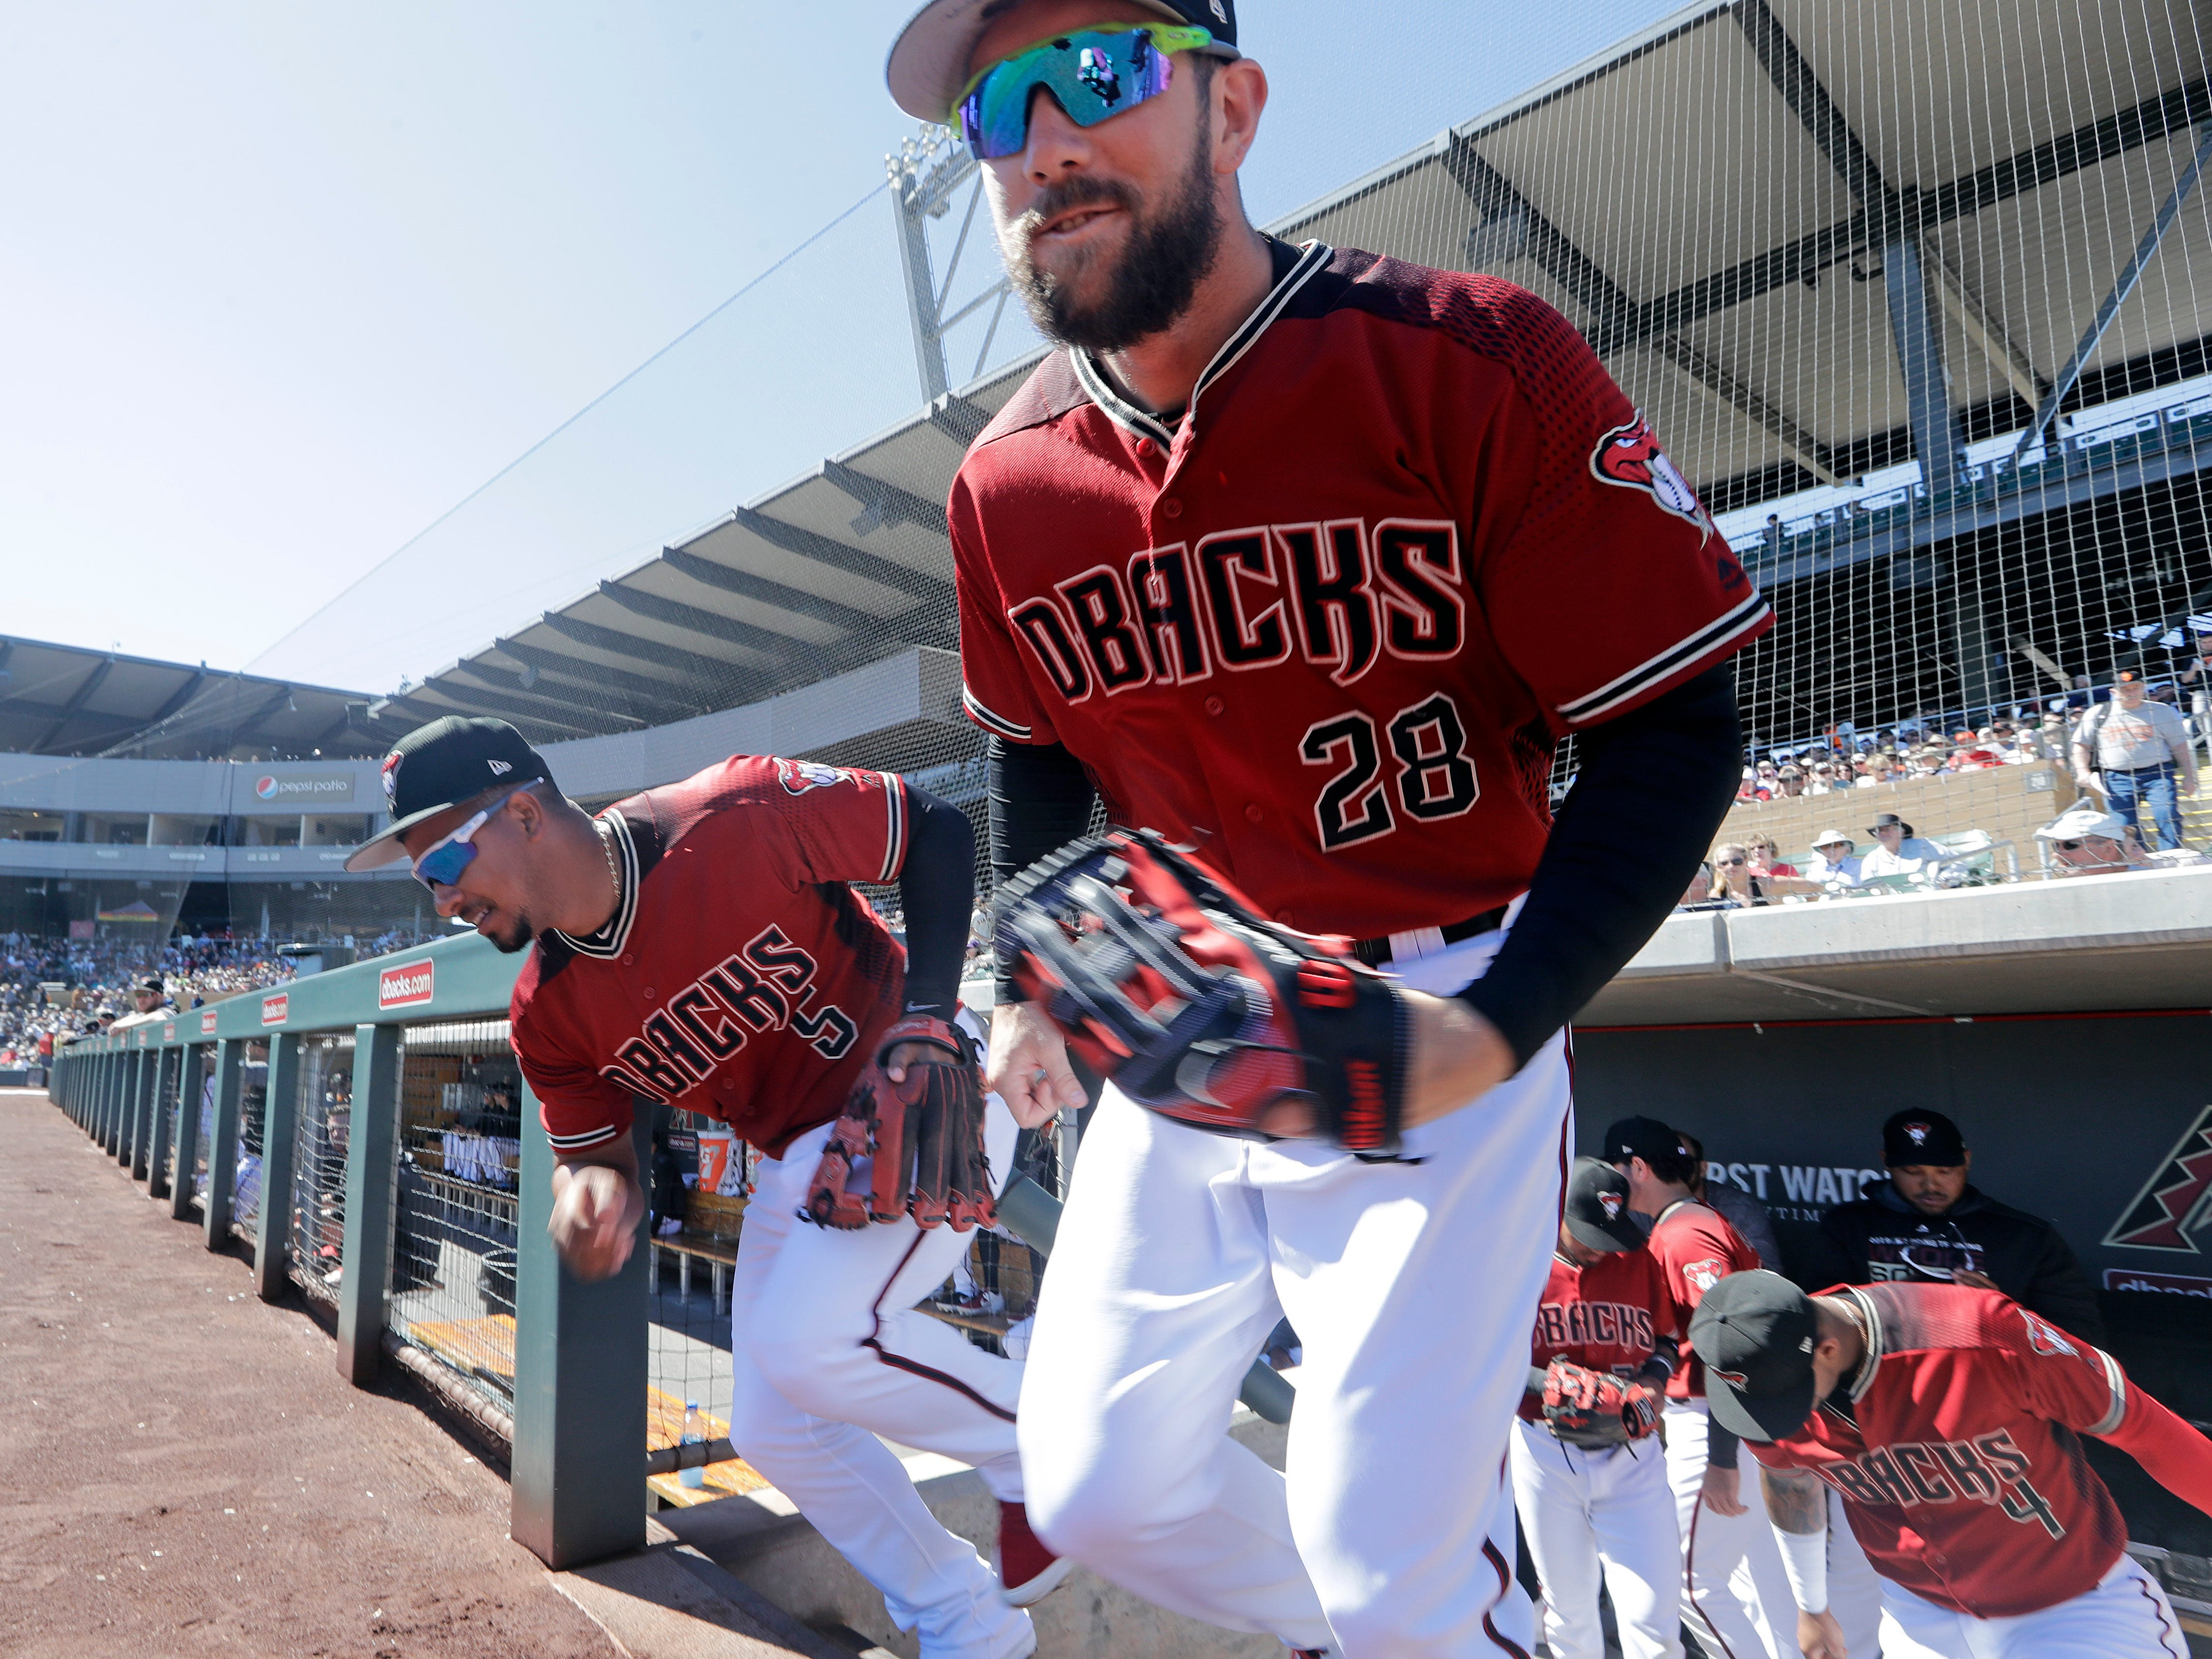 Arizona Diamondbacks' Steven Souza Jr. (28) and Eduardo Escobar (5) lead players out of the dugout before a spring training baseball game against the San Francisco Giants Thursday, March 14, 2019, in Scottsdale, Ariz.